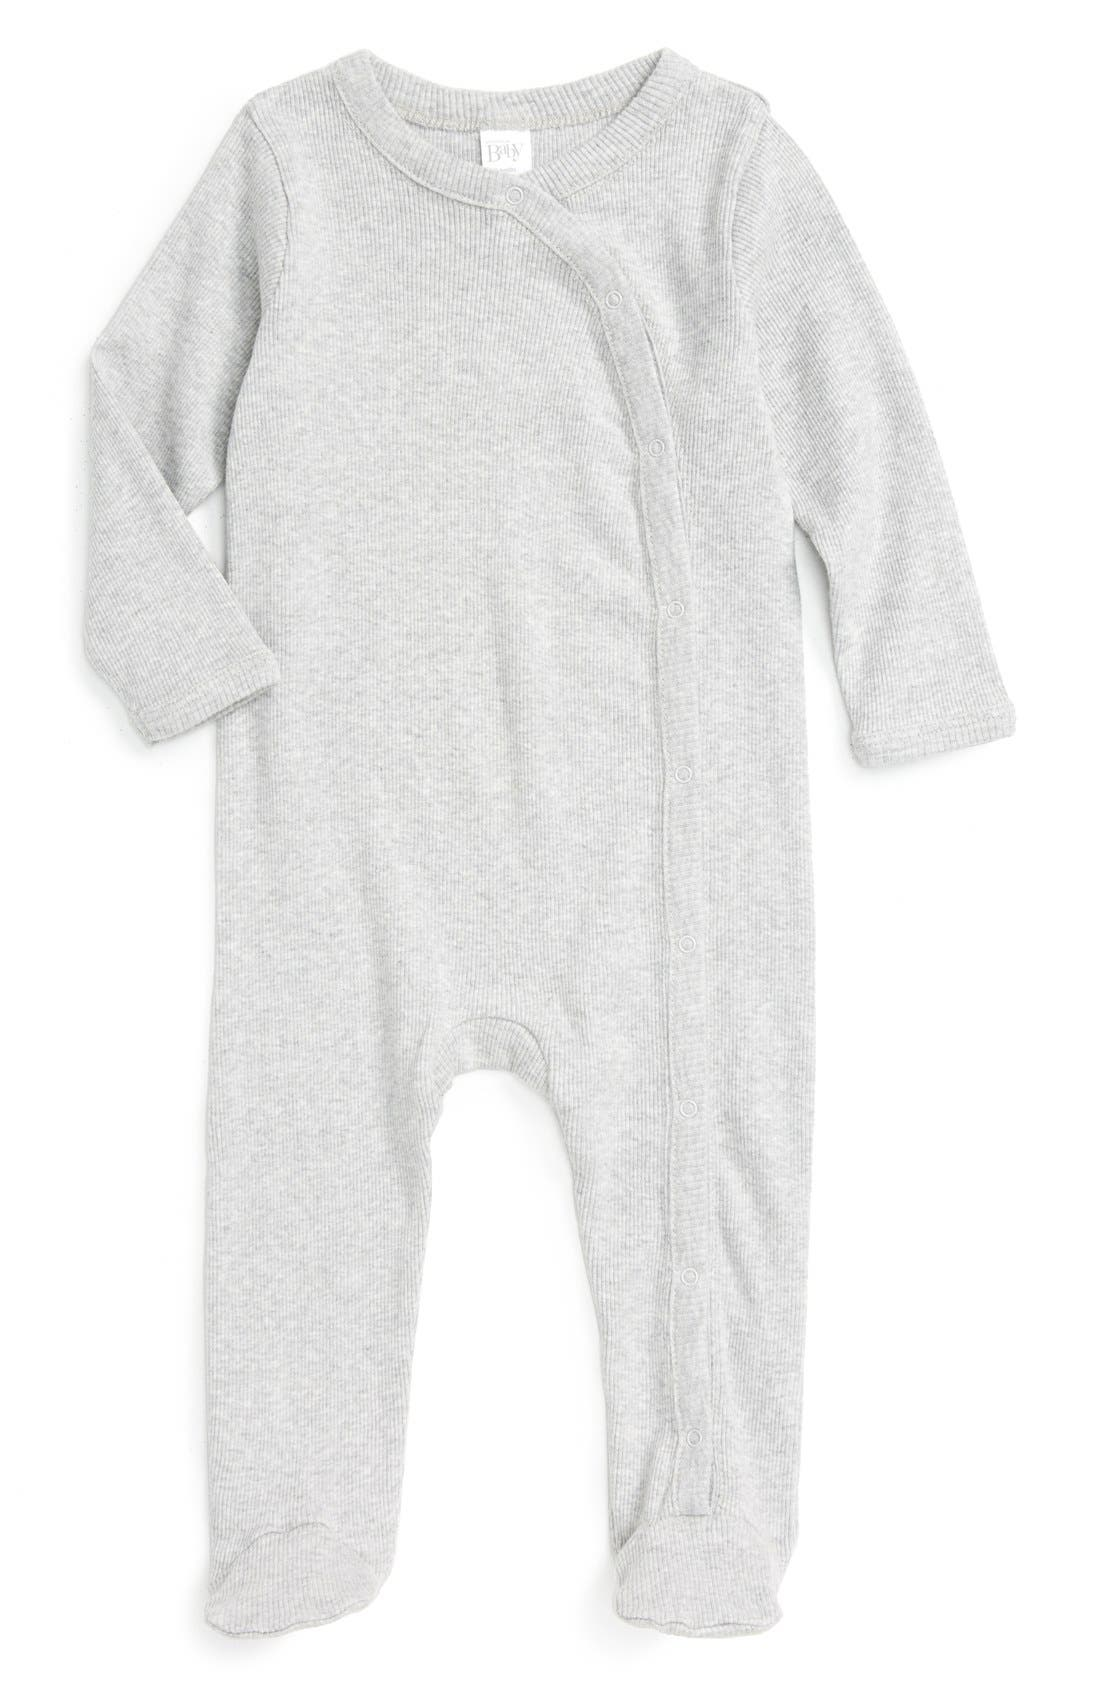 Main Image - Nordstrom Baby Rib Knit Footie (Baby)